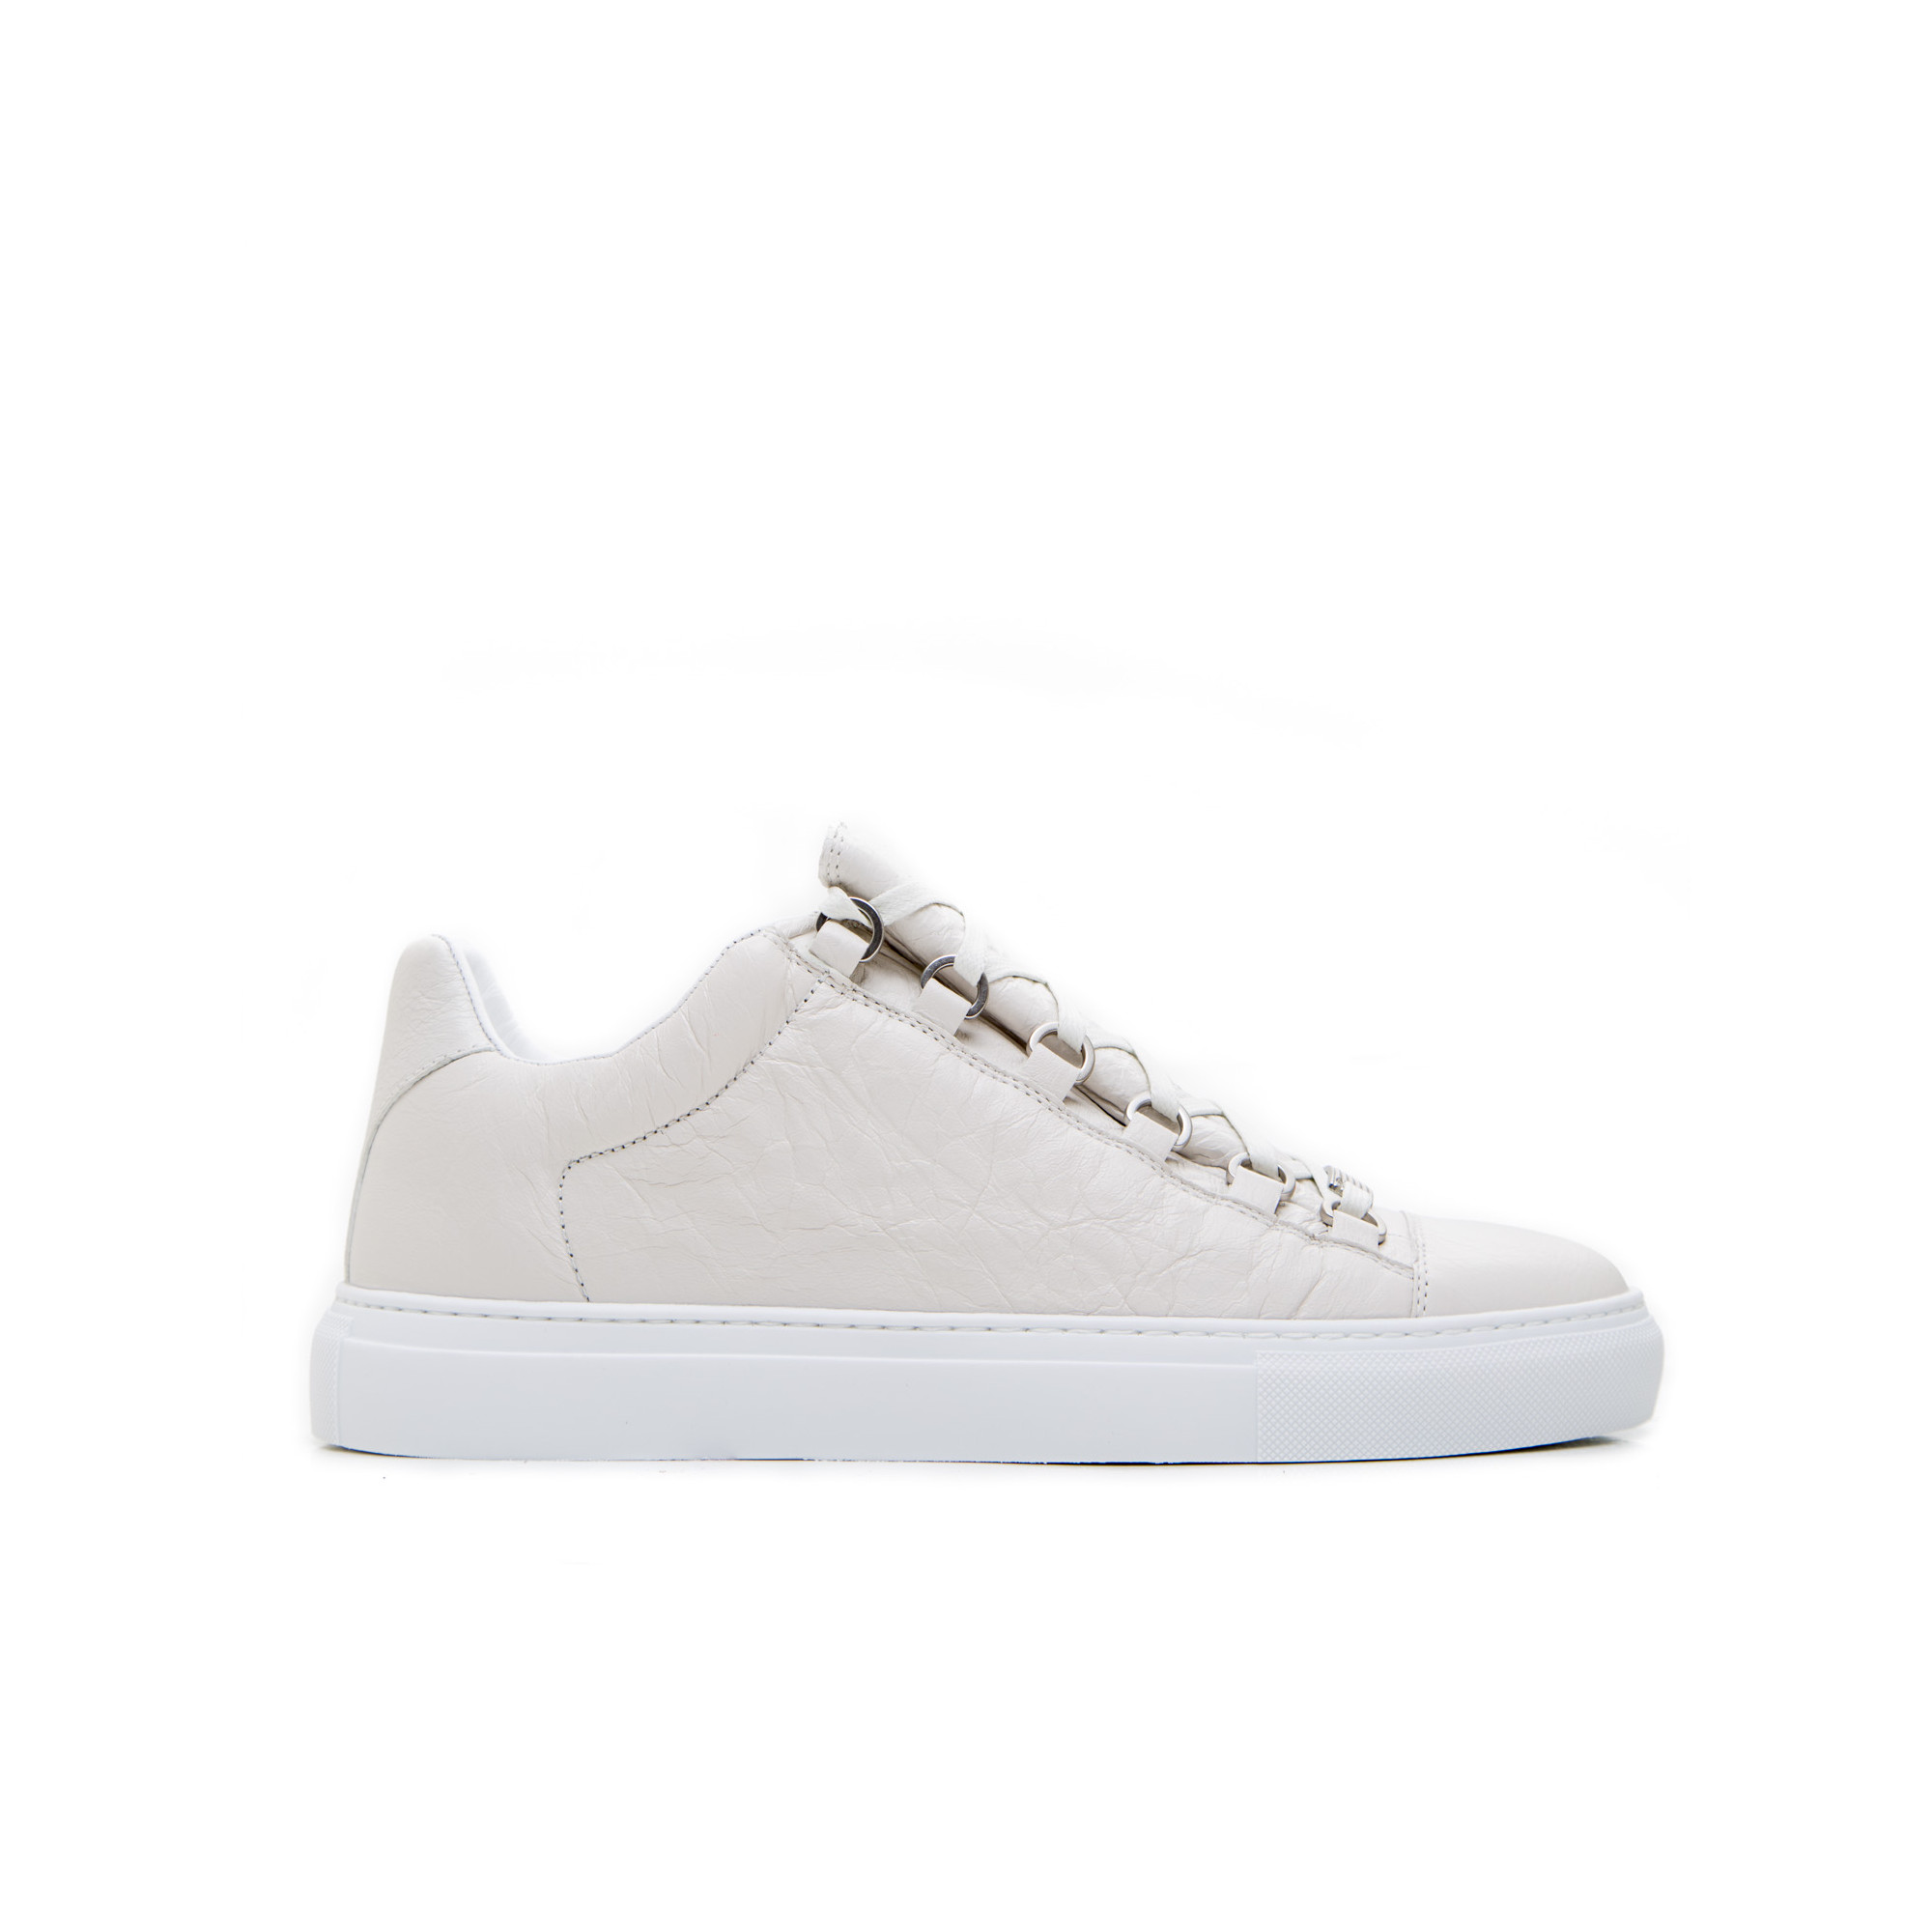 Casadei Chaussures Blanches Pour Les Hommes XpQy15